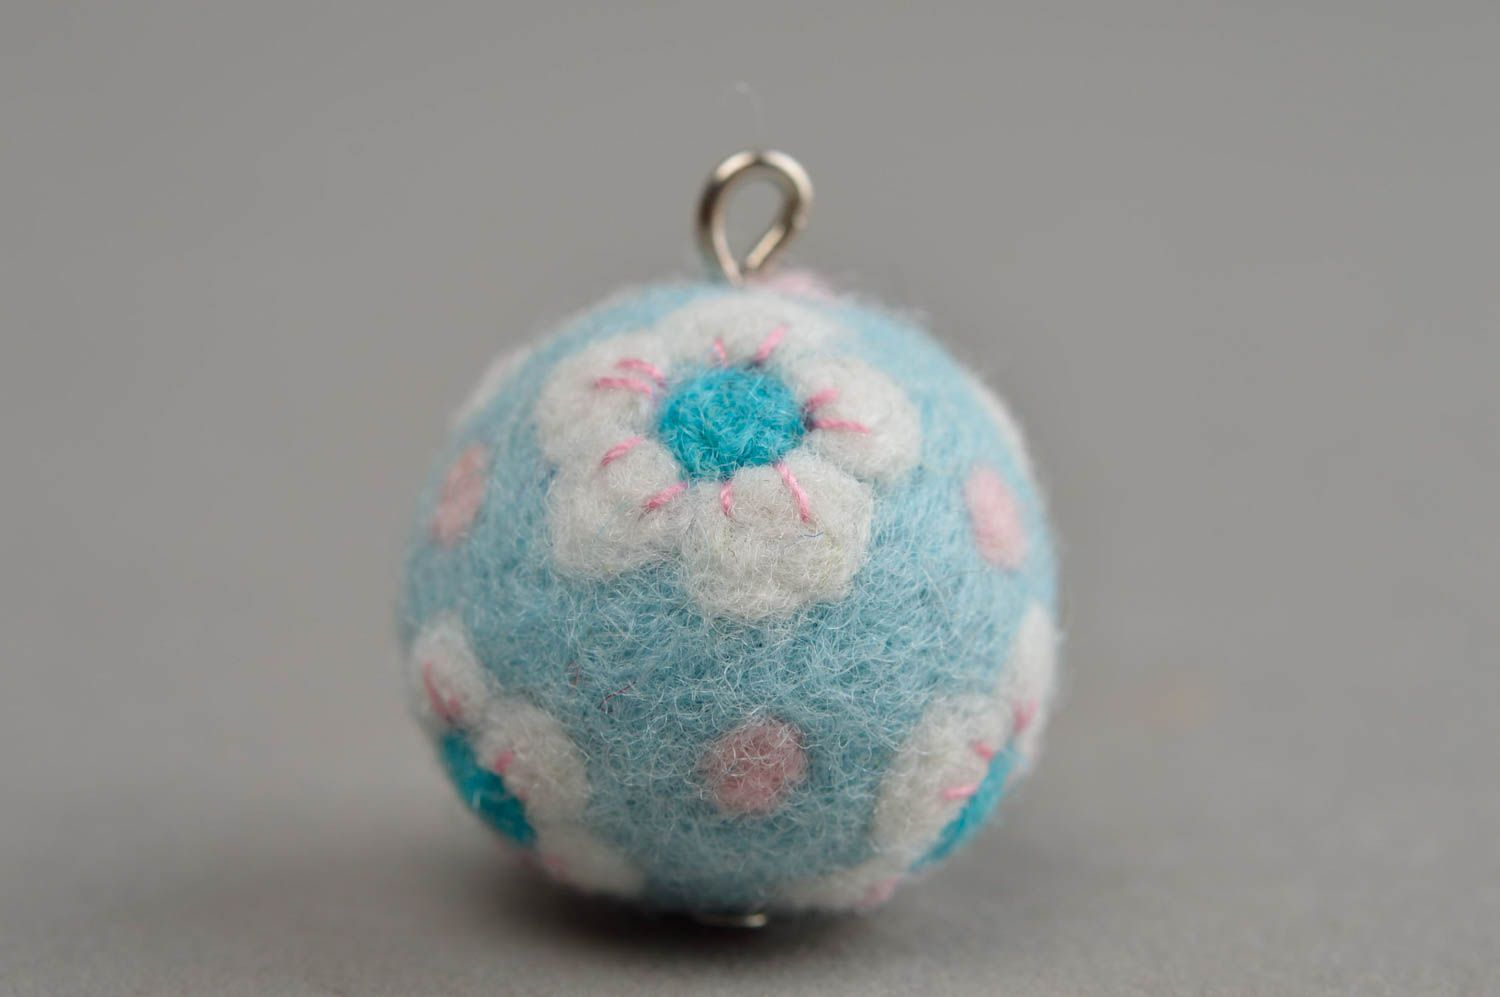 Beautiful homemade felted wool ball necklace craft supplies diy jewelry making photo 3